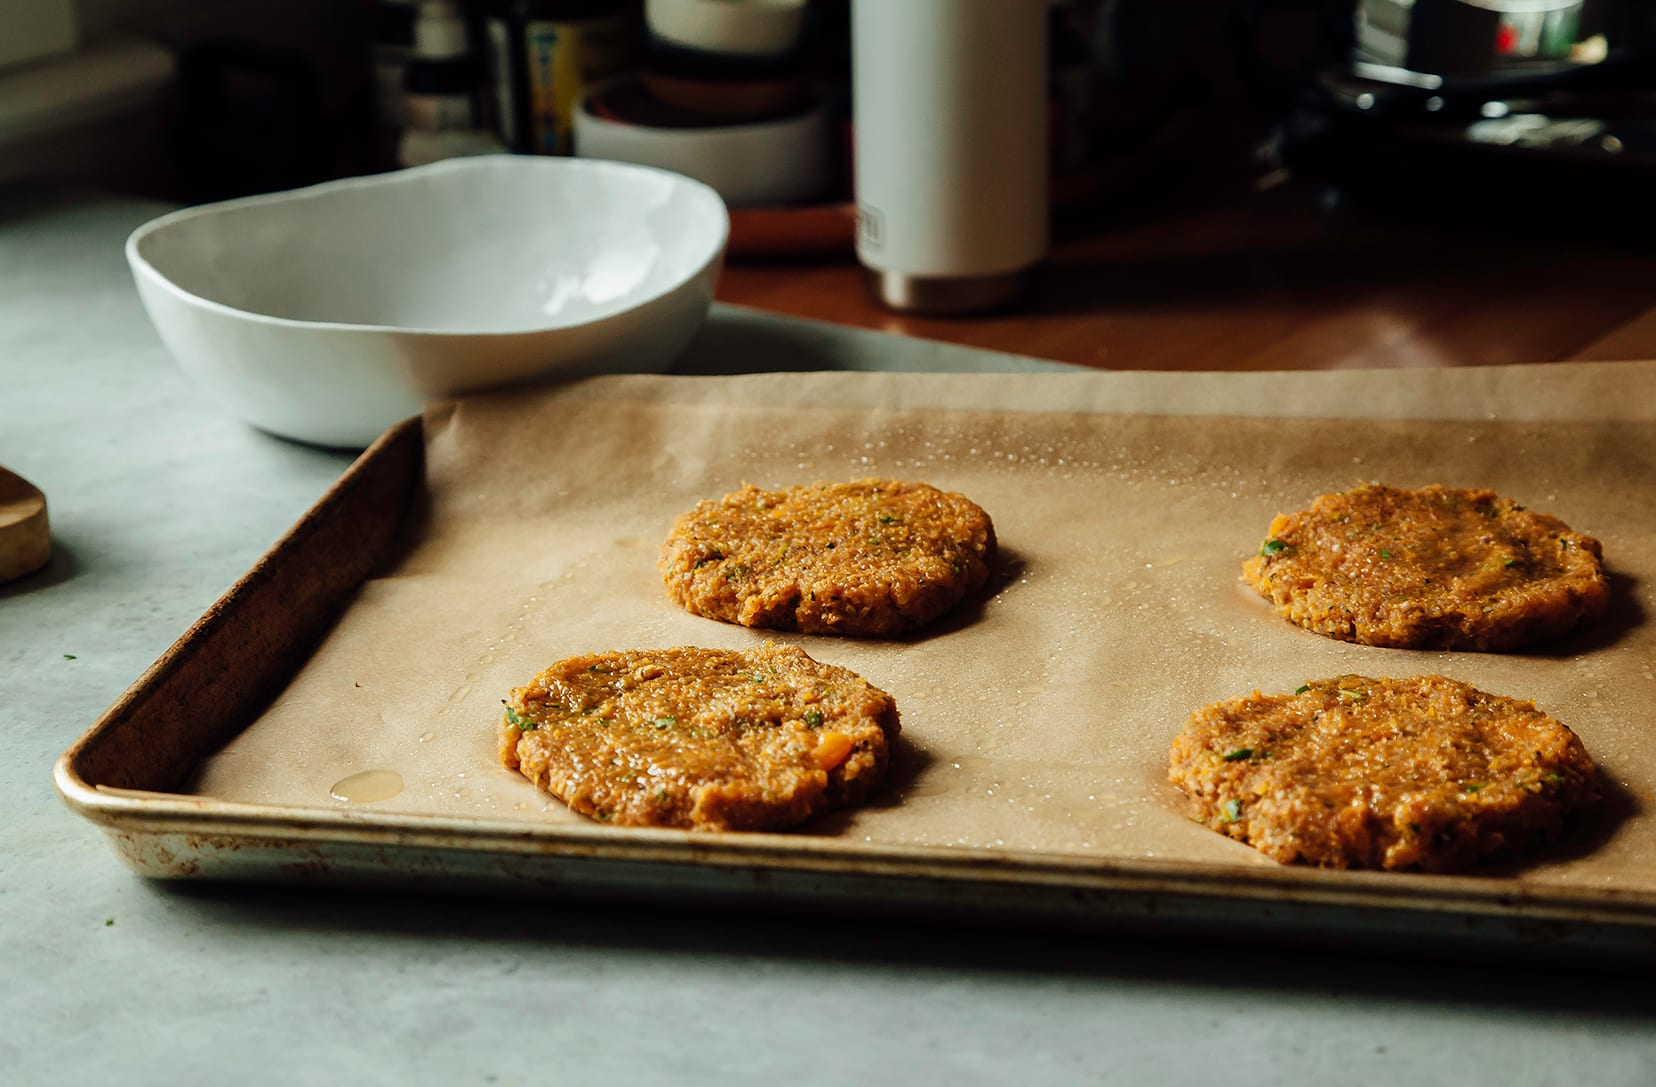 A 3/4 angle shot of formed sweet potato cake patties on a parchment lined baking sheet.